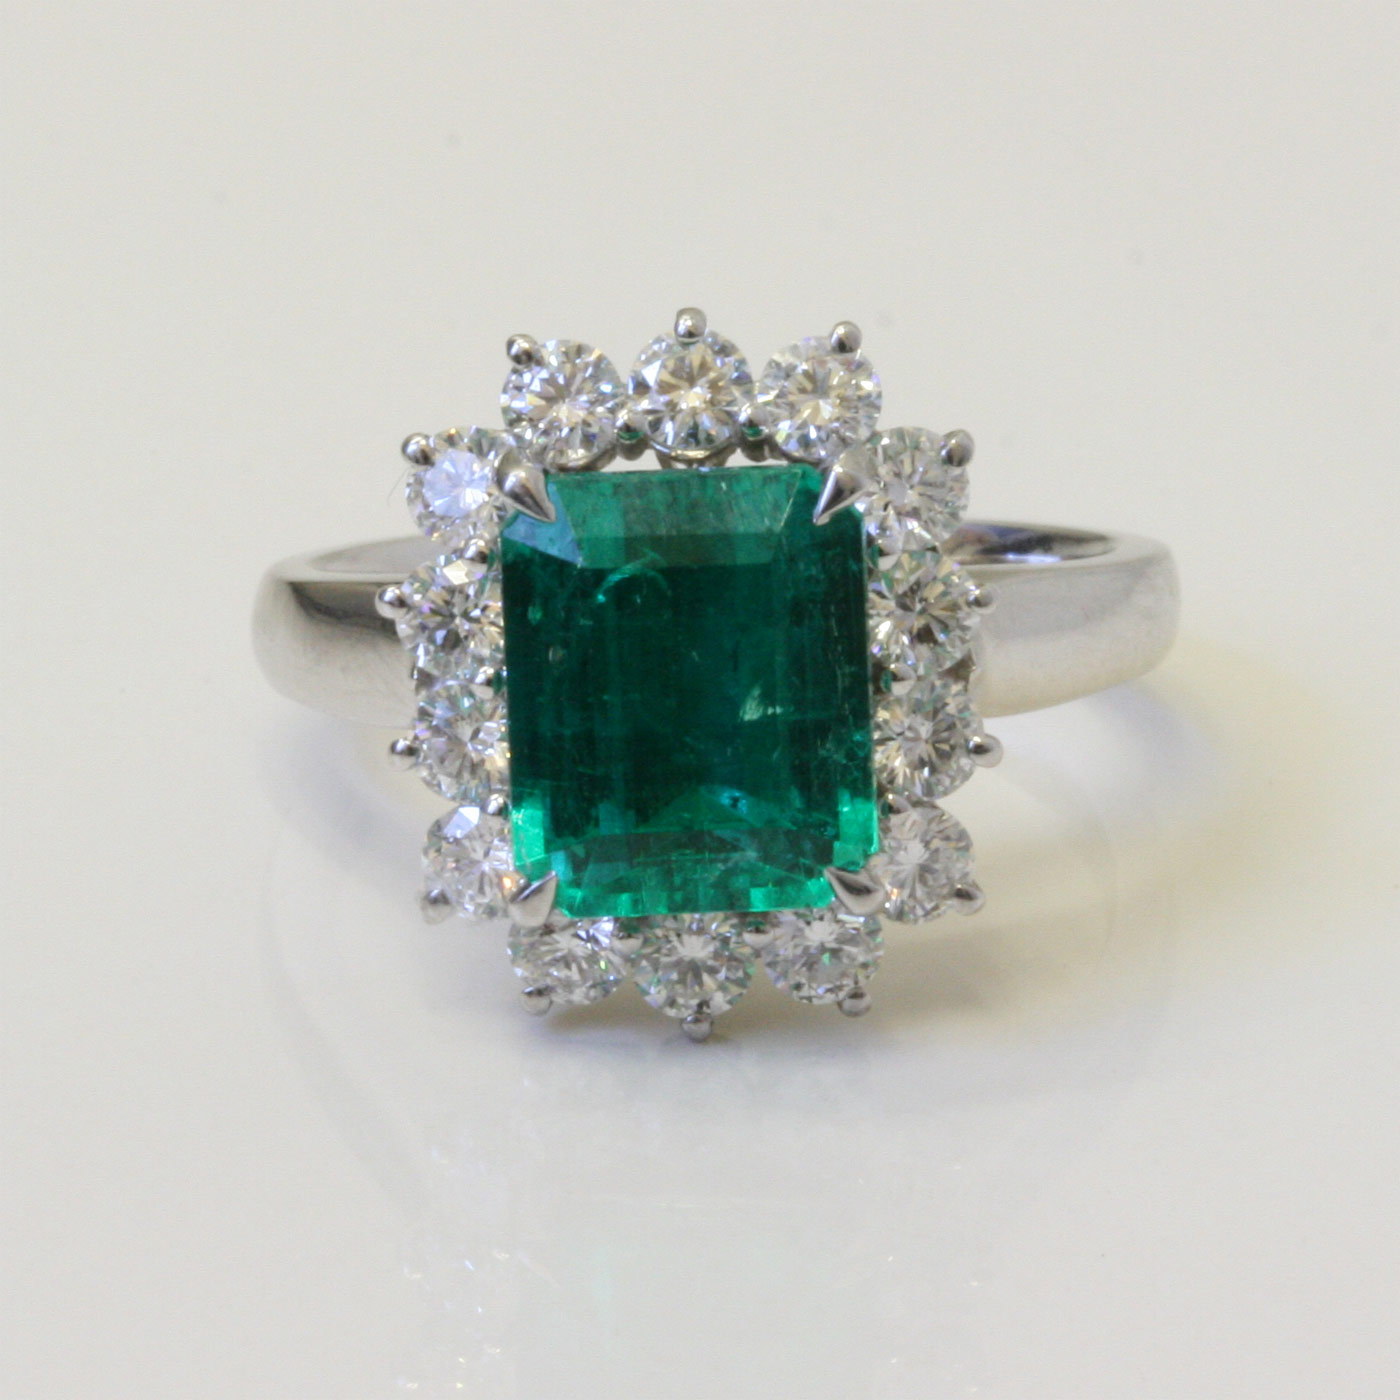 columbian emerald and diamond ring sold items sold rings